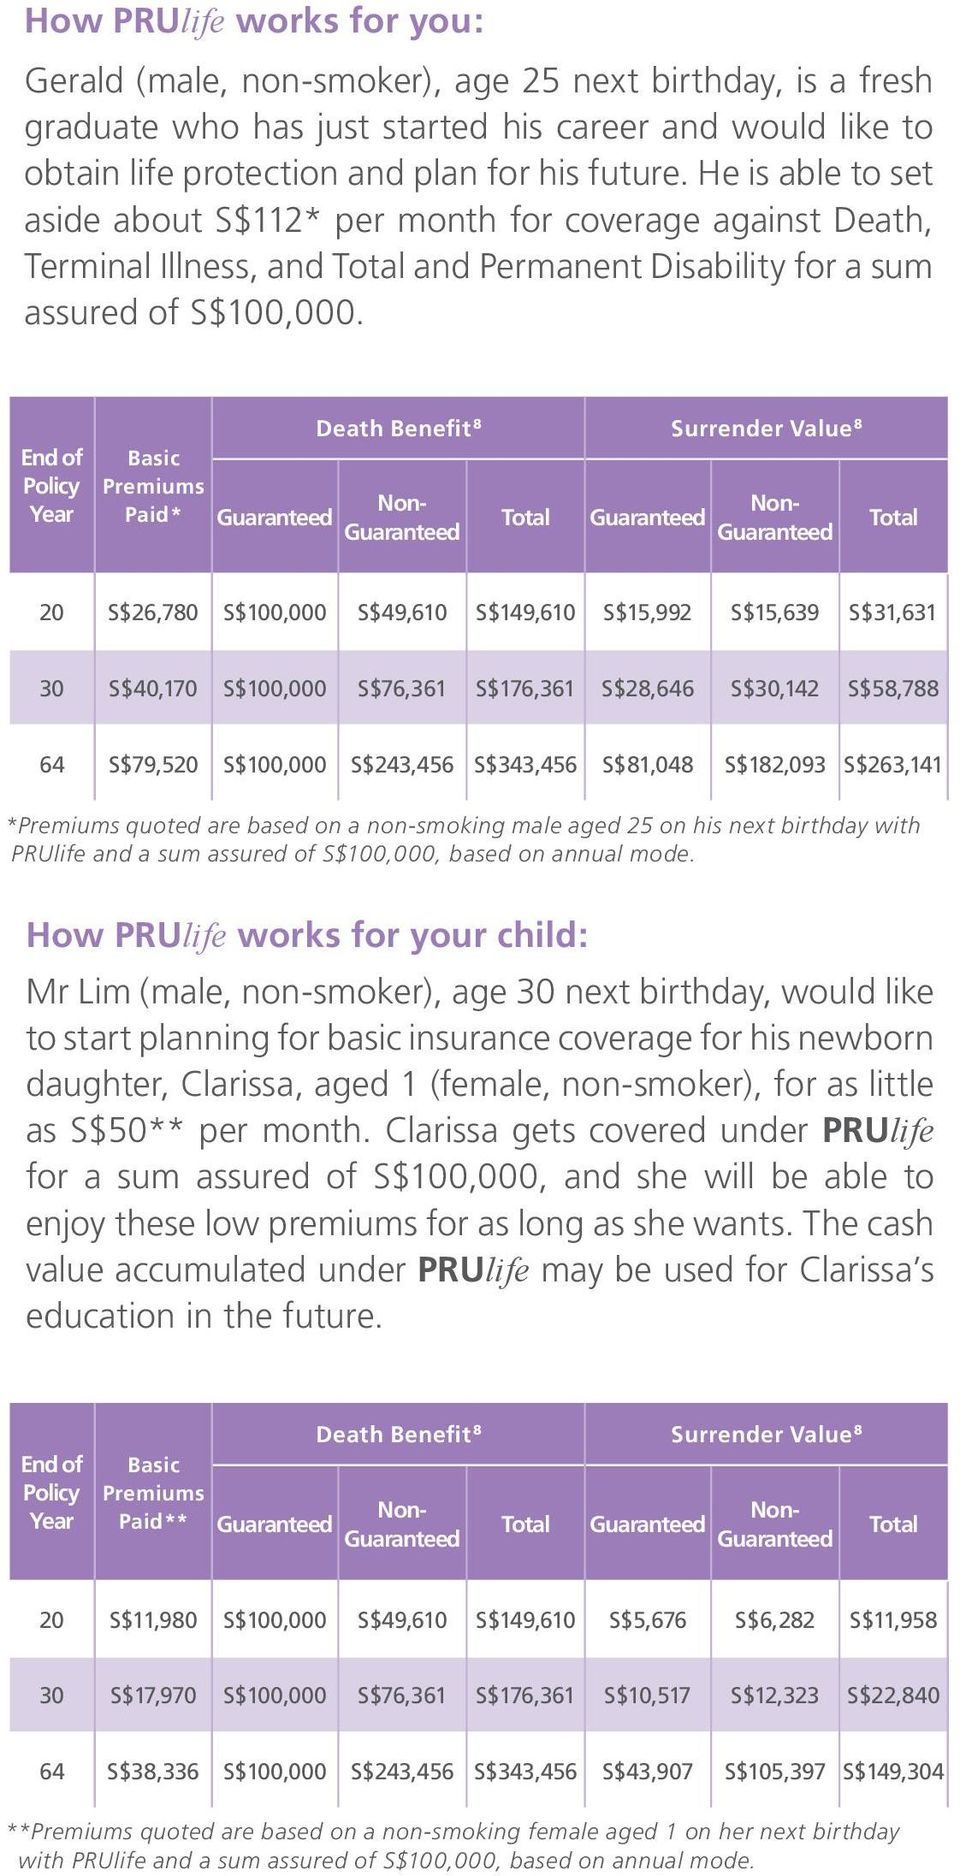 End of Policy Year Basic Premiums Paid* Death Benefit 8 Surrender Value 8 20 S$26,780 S$100,000 S$49,610 S$149,610 S$15,992 S$15,639 S$31,631 30 S$40,170 S$100,000 S$76,361 S$176,361 S$28,646